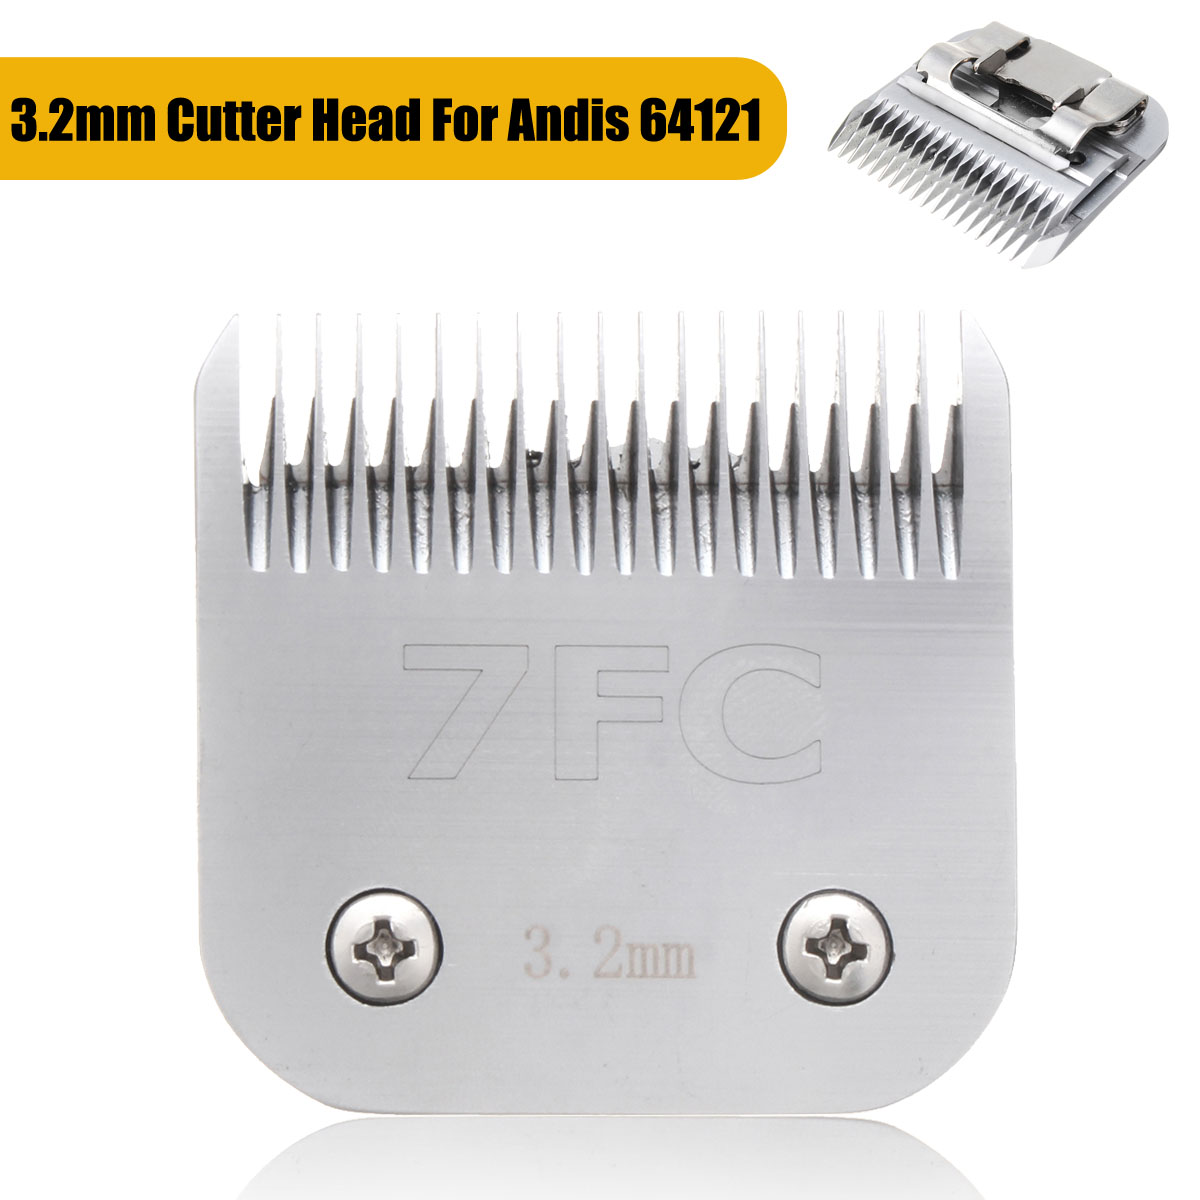 Pet Clipper 3.2mm #7FC Detachable Dog Clipper Blade Head Grooming For Andis 64121 Carbon Tool Steel image